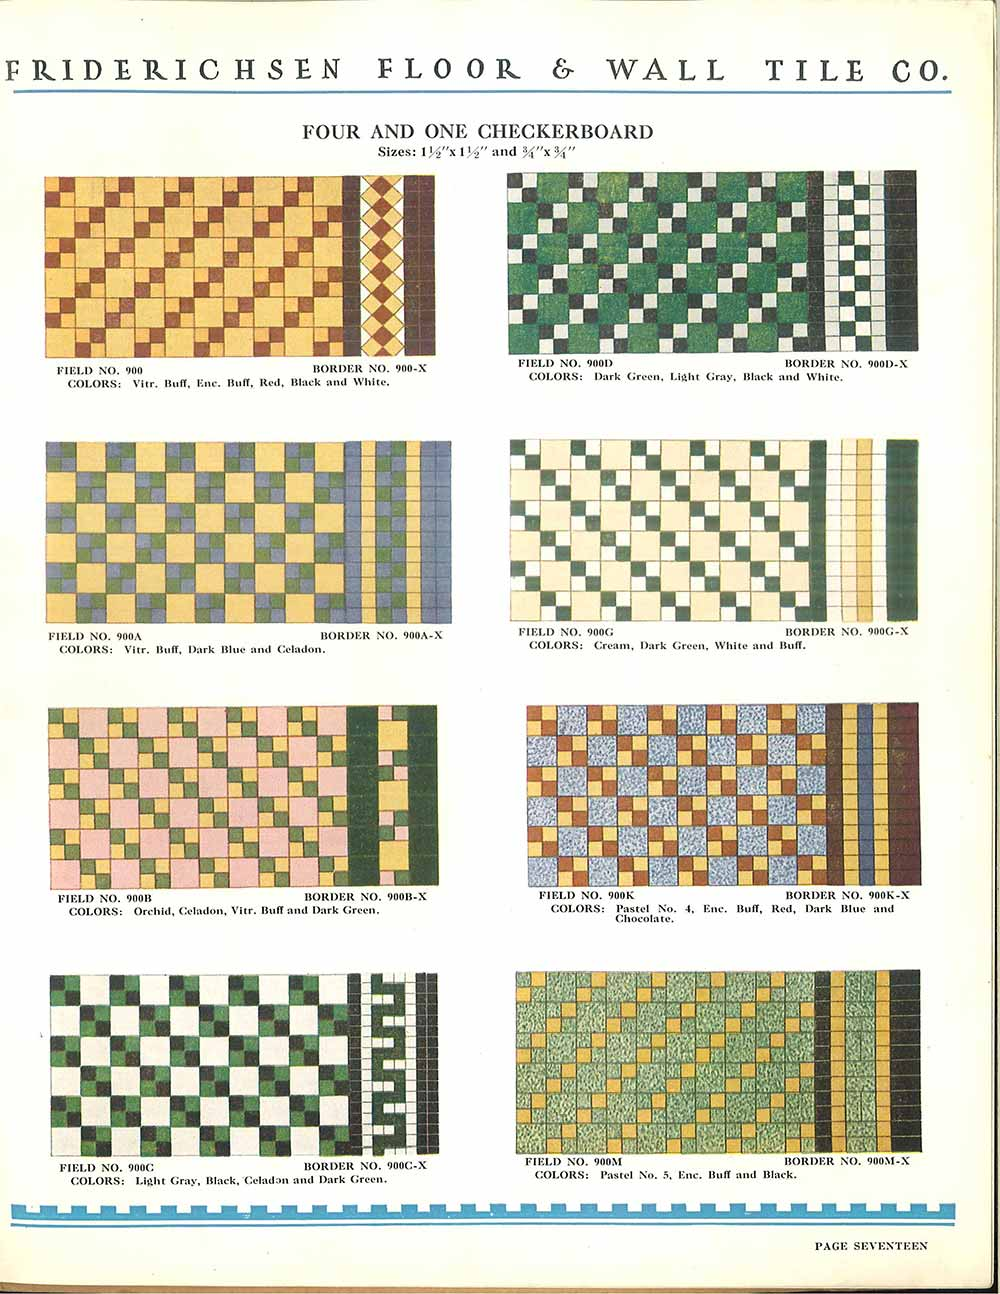 Patterns Of Mosaic Floor Tile In Amazing Colors - 1920's floor tile patterns